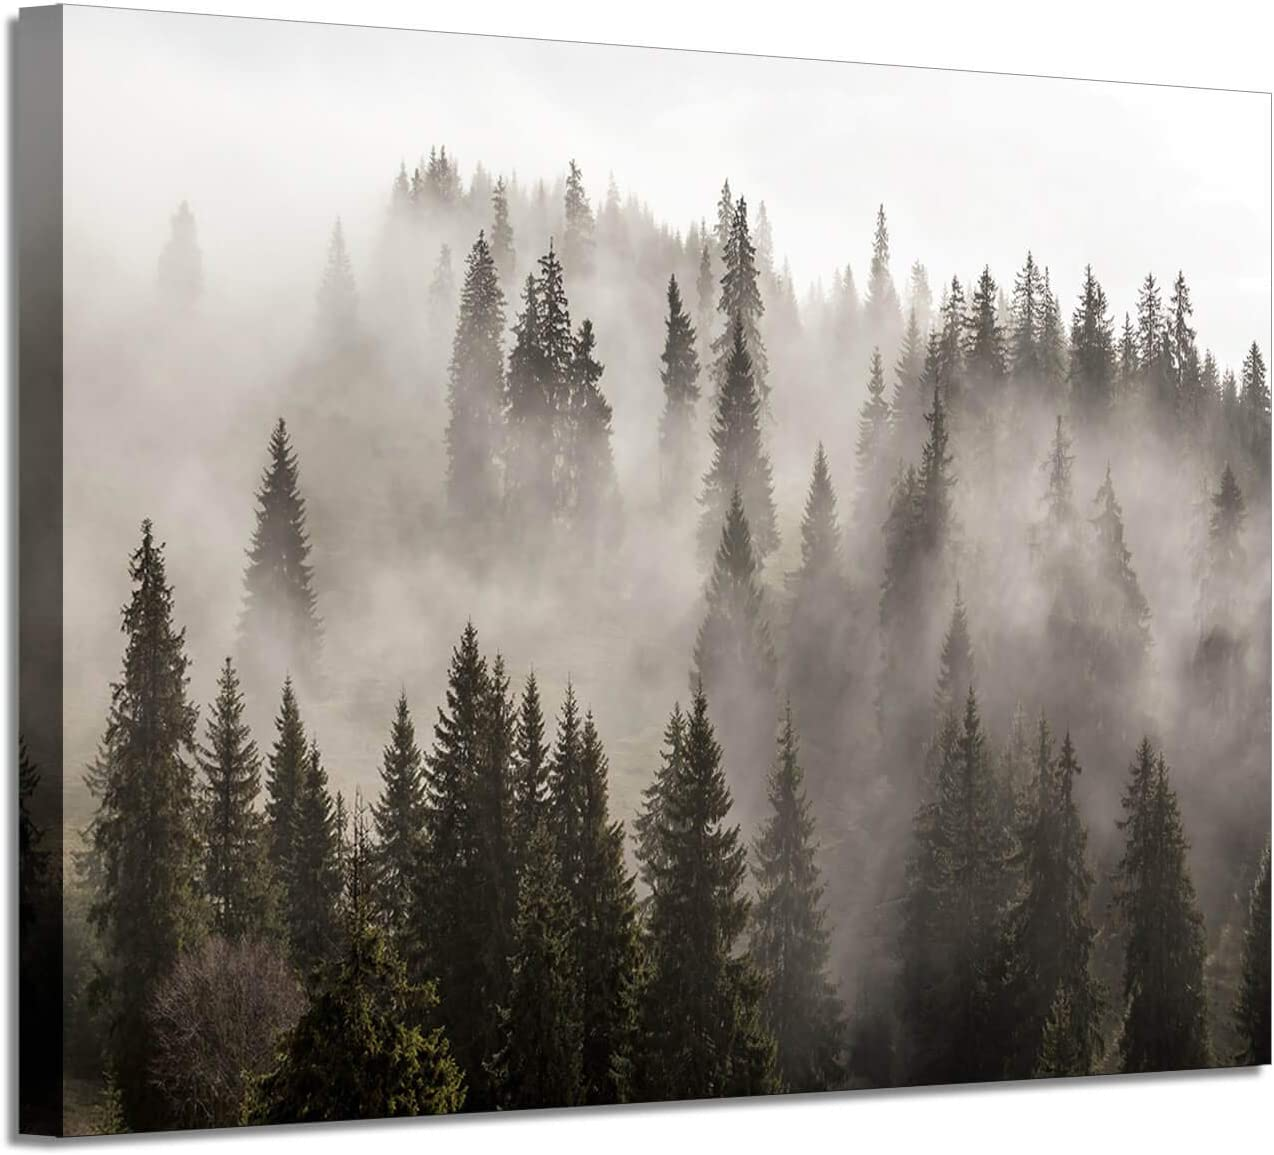 Foggy Forest Picture Wall Art: Landscape Artwork Photographic Print on Canvas for Office (45'' x 30'' x 1 Panel)